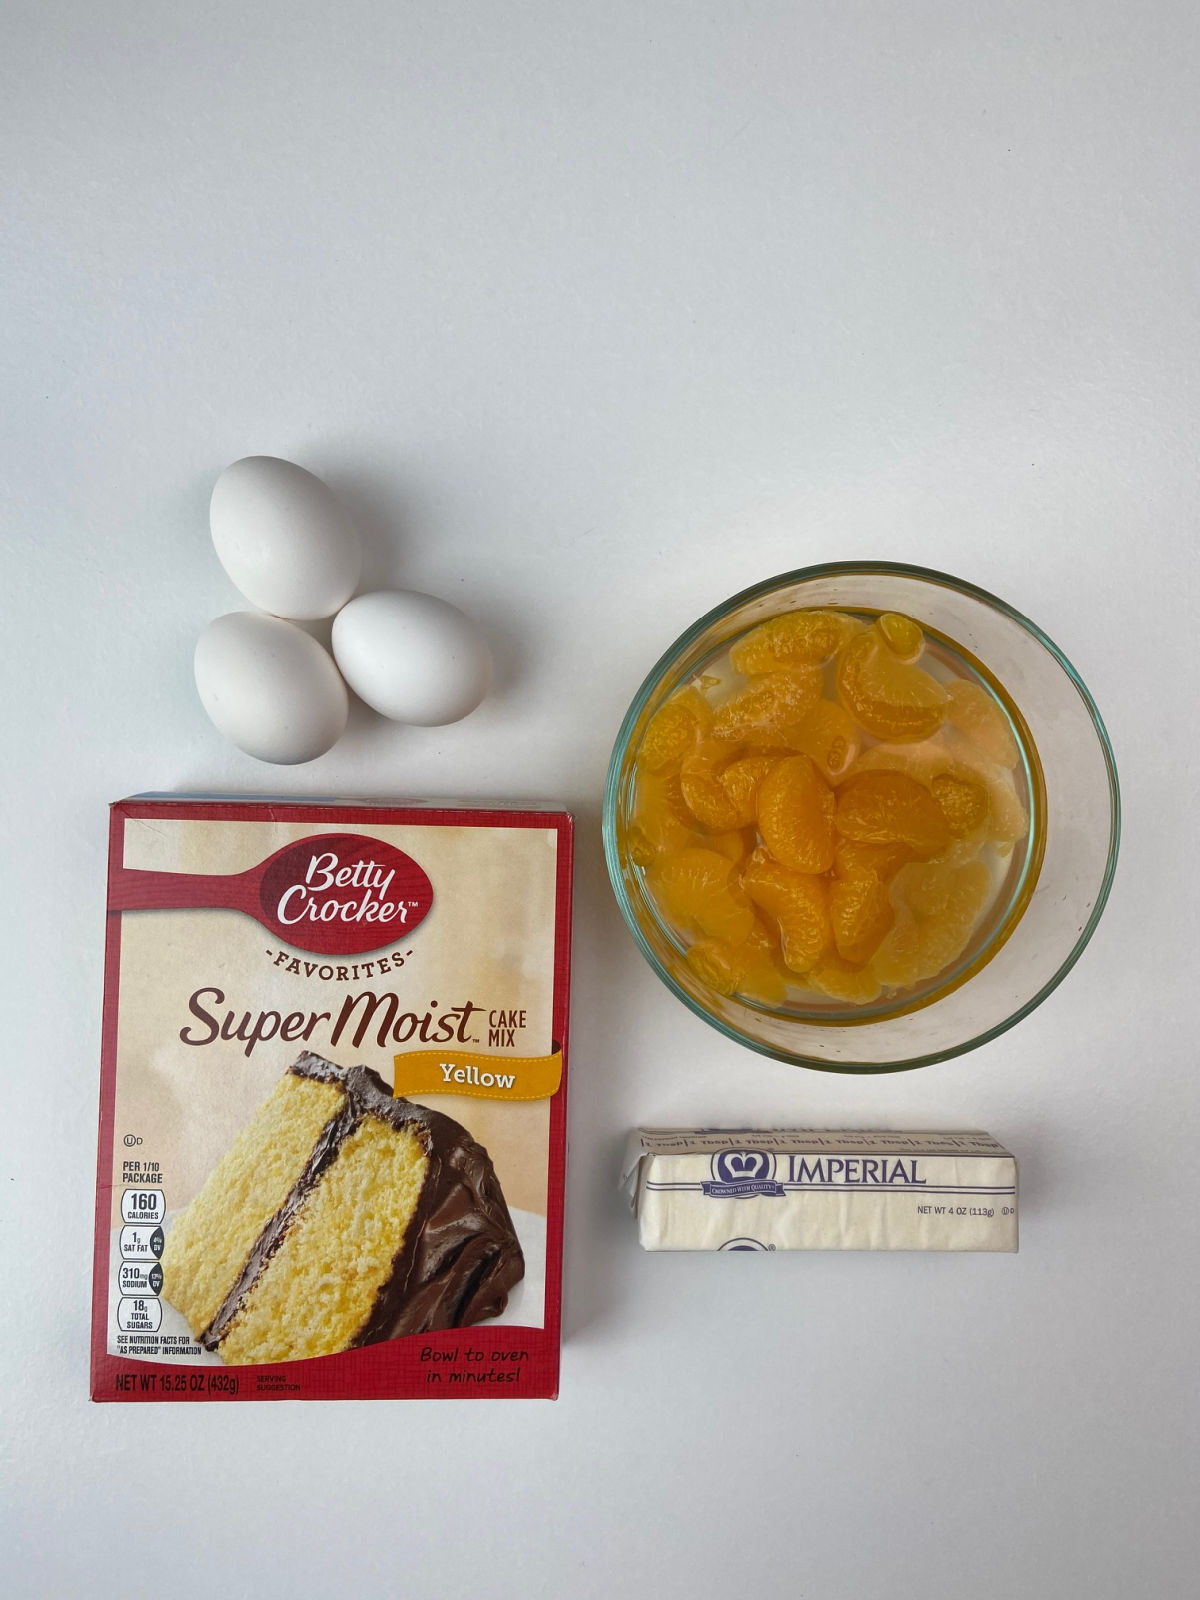 cake mix box, 3 eggs, mandarin oranges in bowl and stick of margarine